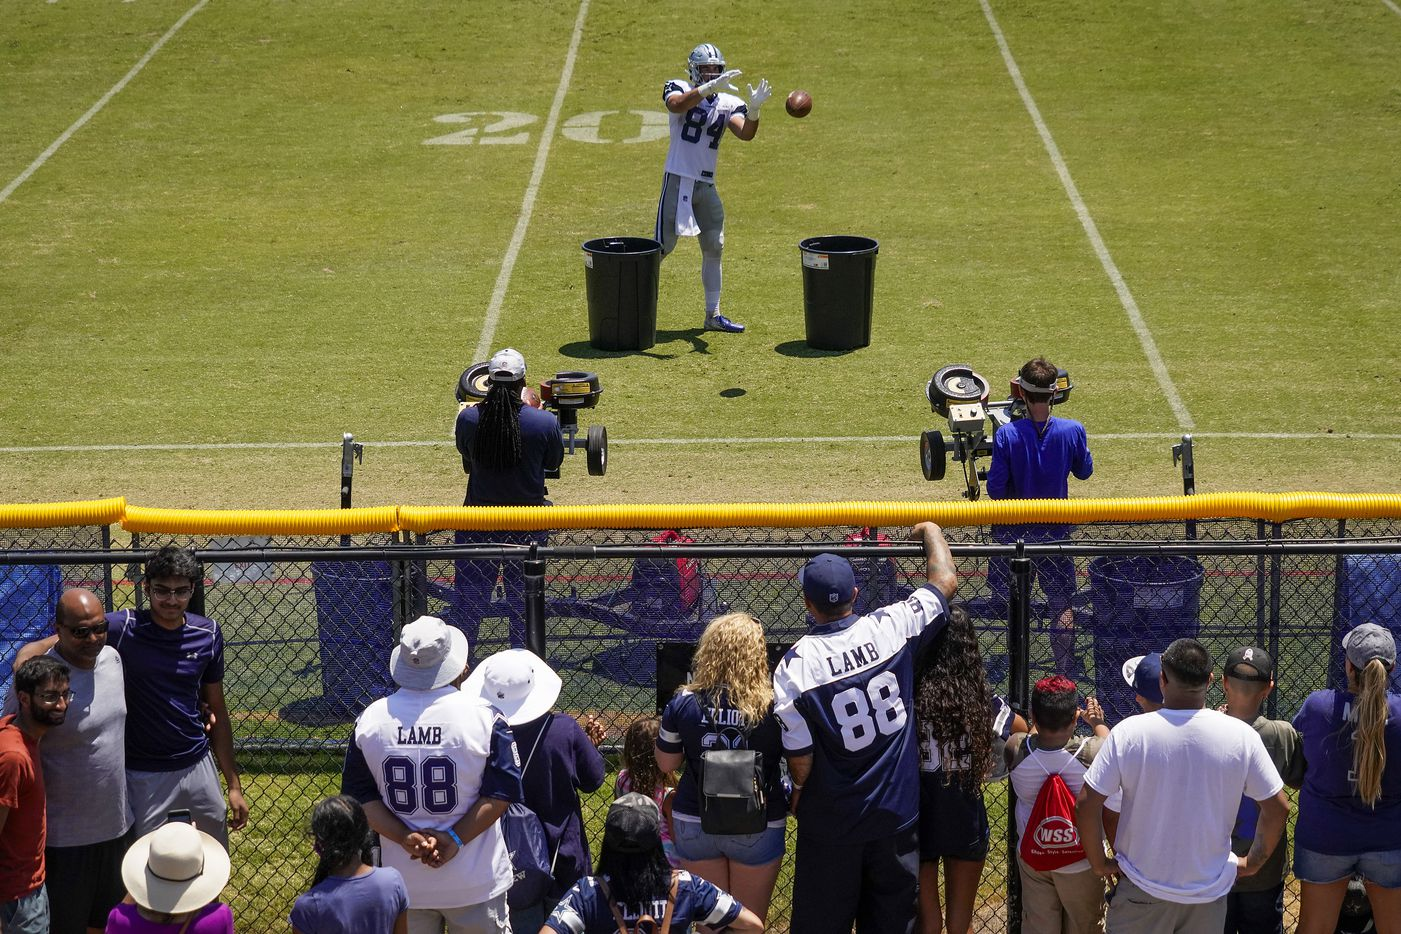 Dallas Cowboys fans press against a fence to get watch tight end Sean McKeon (84) participate in a drill during a practice at training camp on Wednesday, July 28, 2021, in Oxnard, Calif.